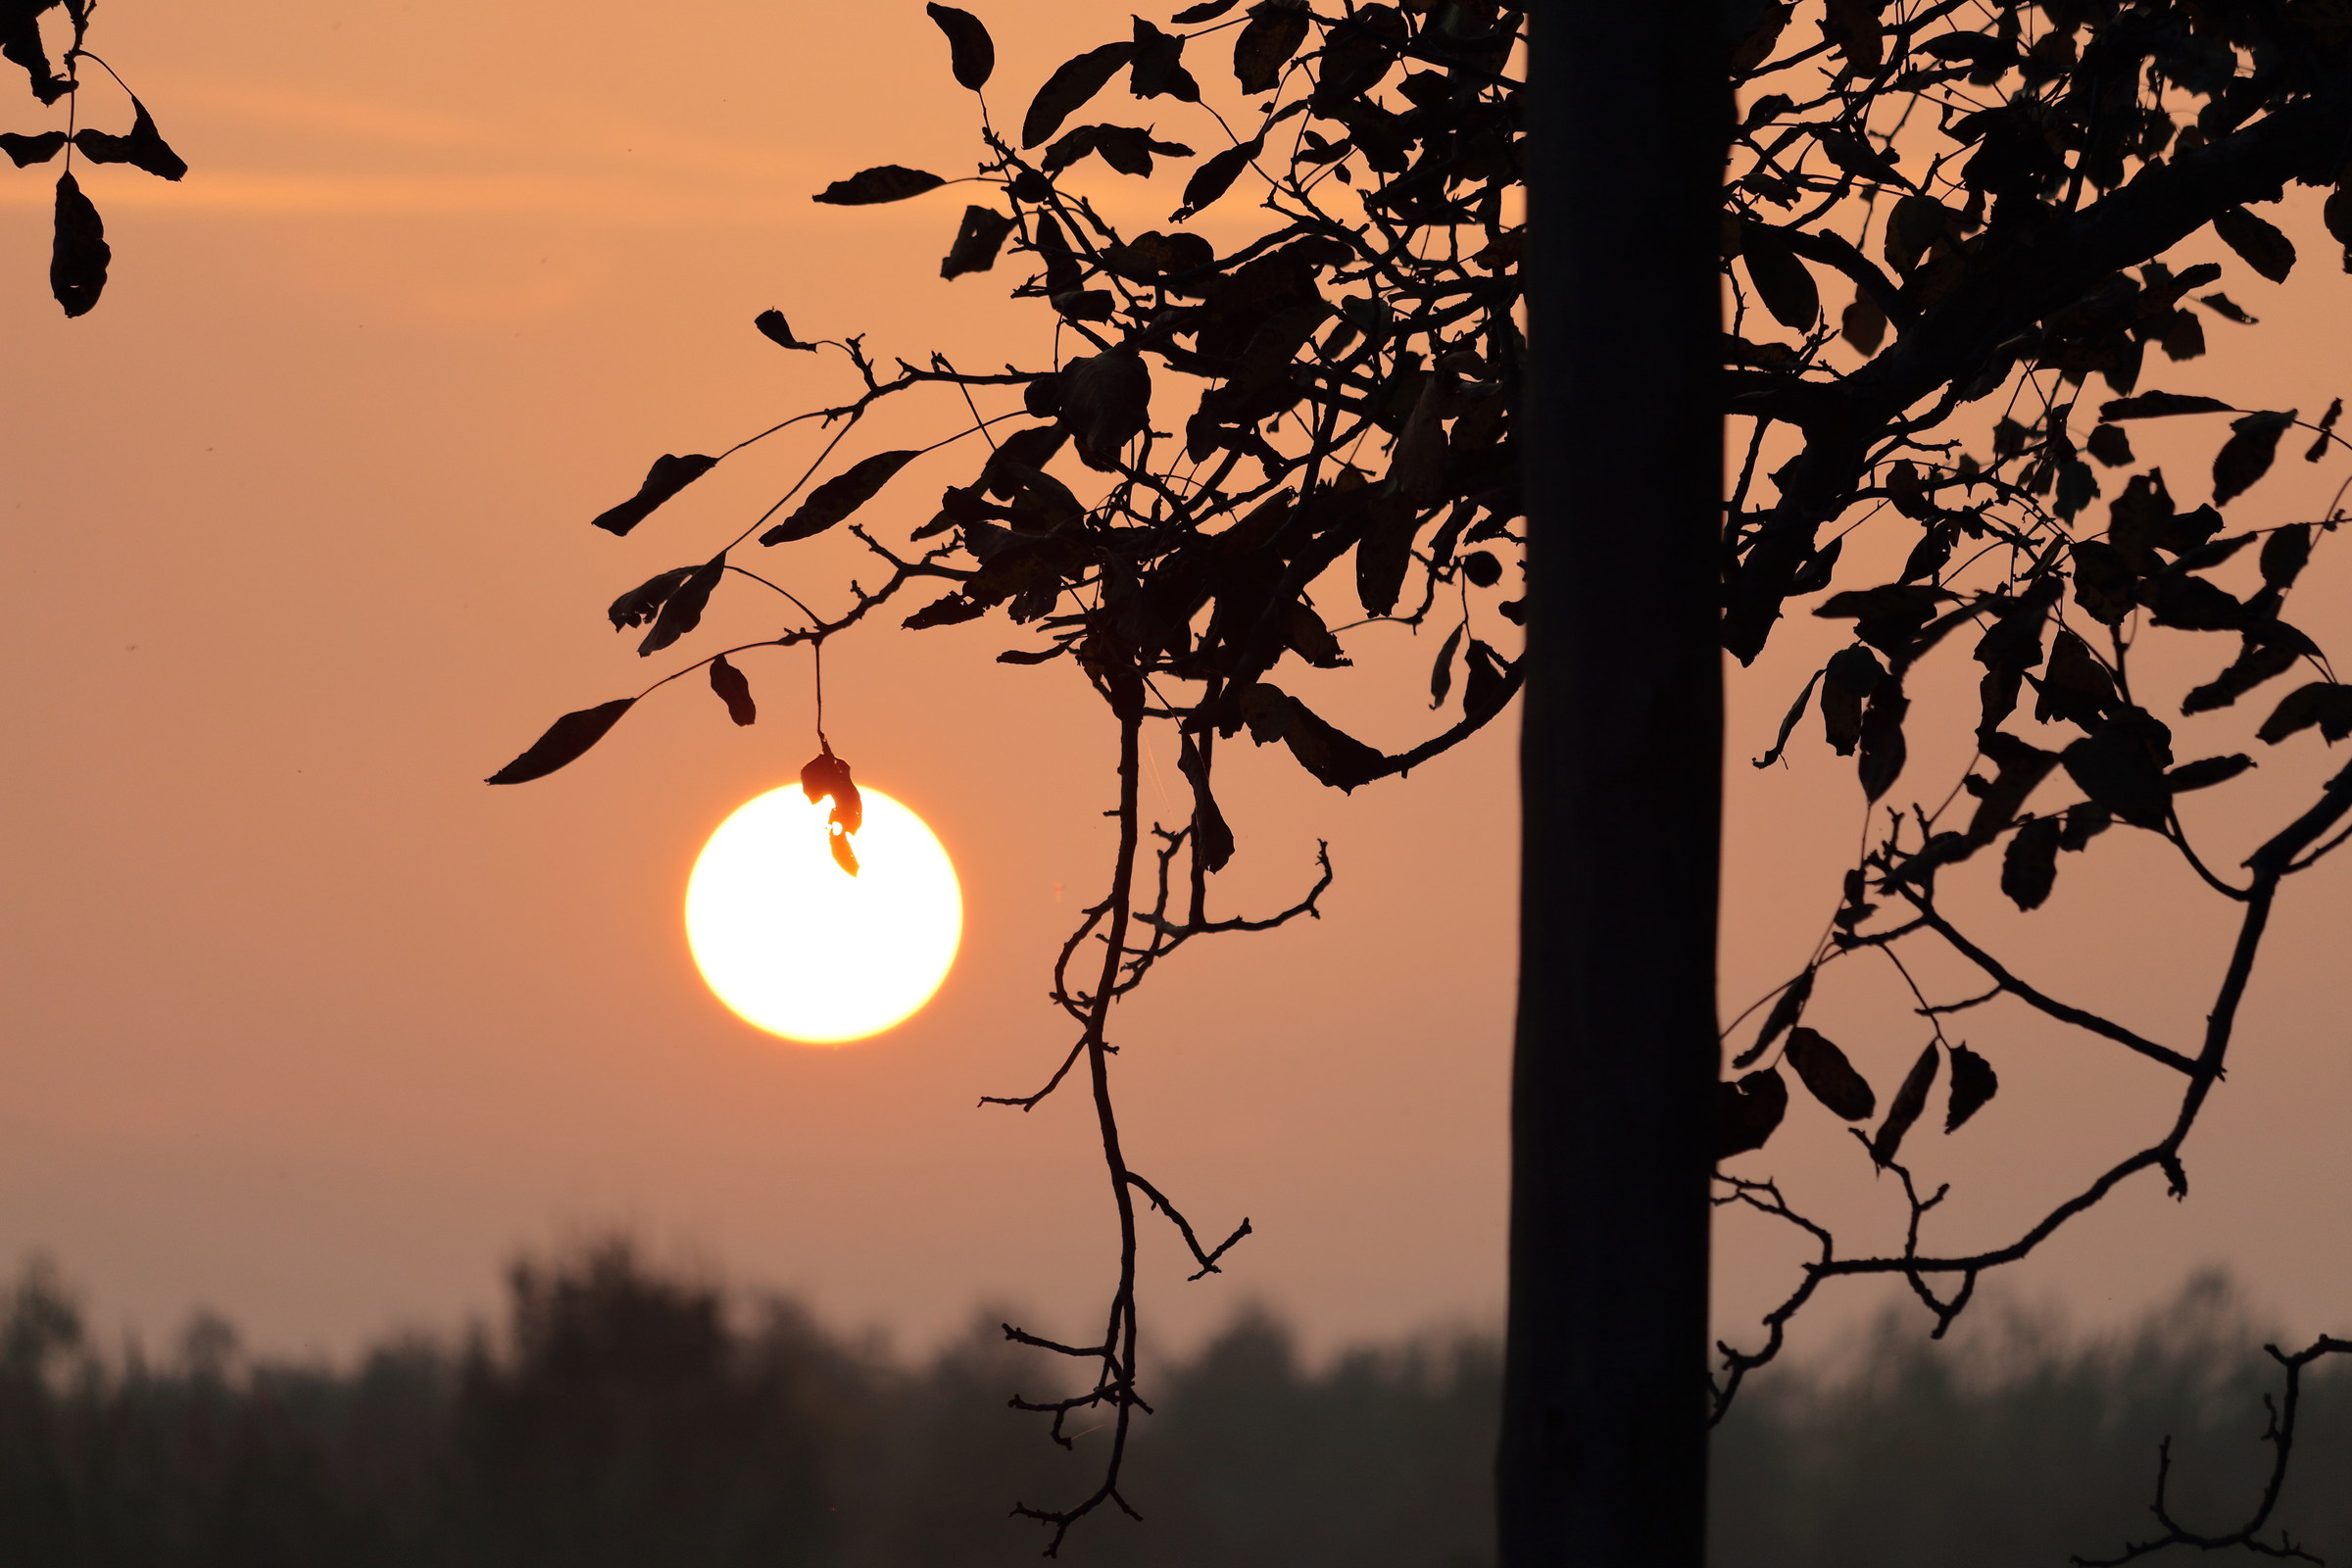 tramonto autunnale in campagna...